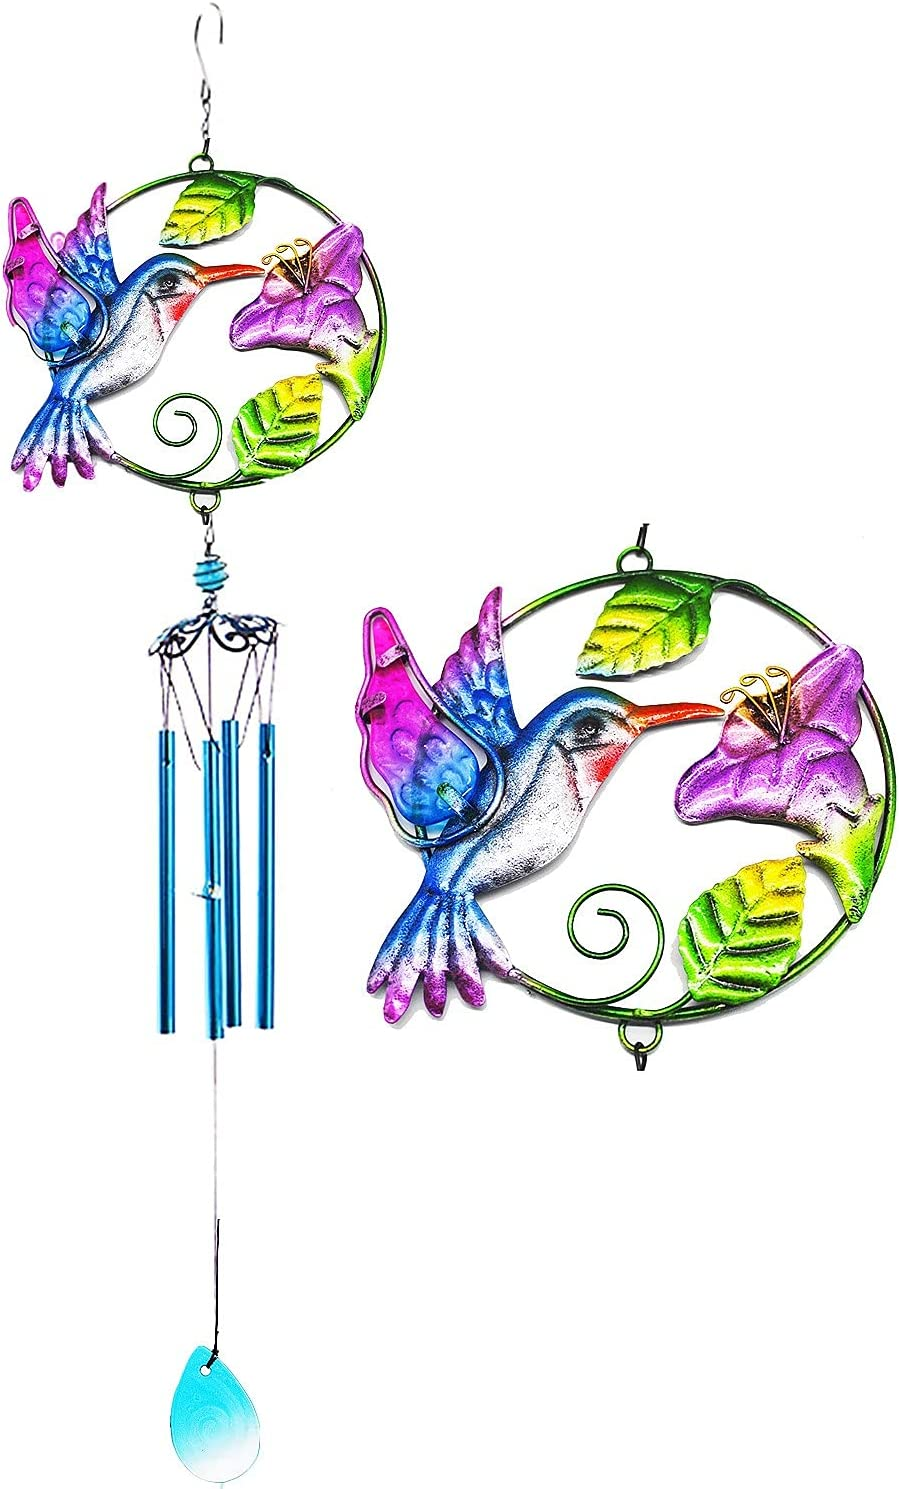 Usdrew Wind Chimes, Classic Old-Fashioned Paint Hummingbird Wind Chime, A Beautiful Gift for Your Patio, Garden, and Outside Home Décor